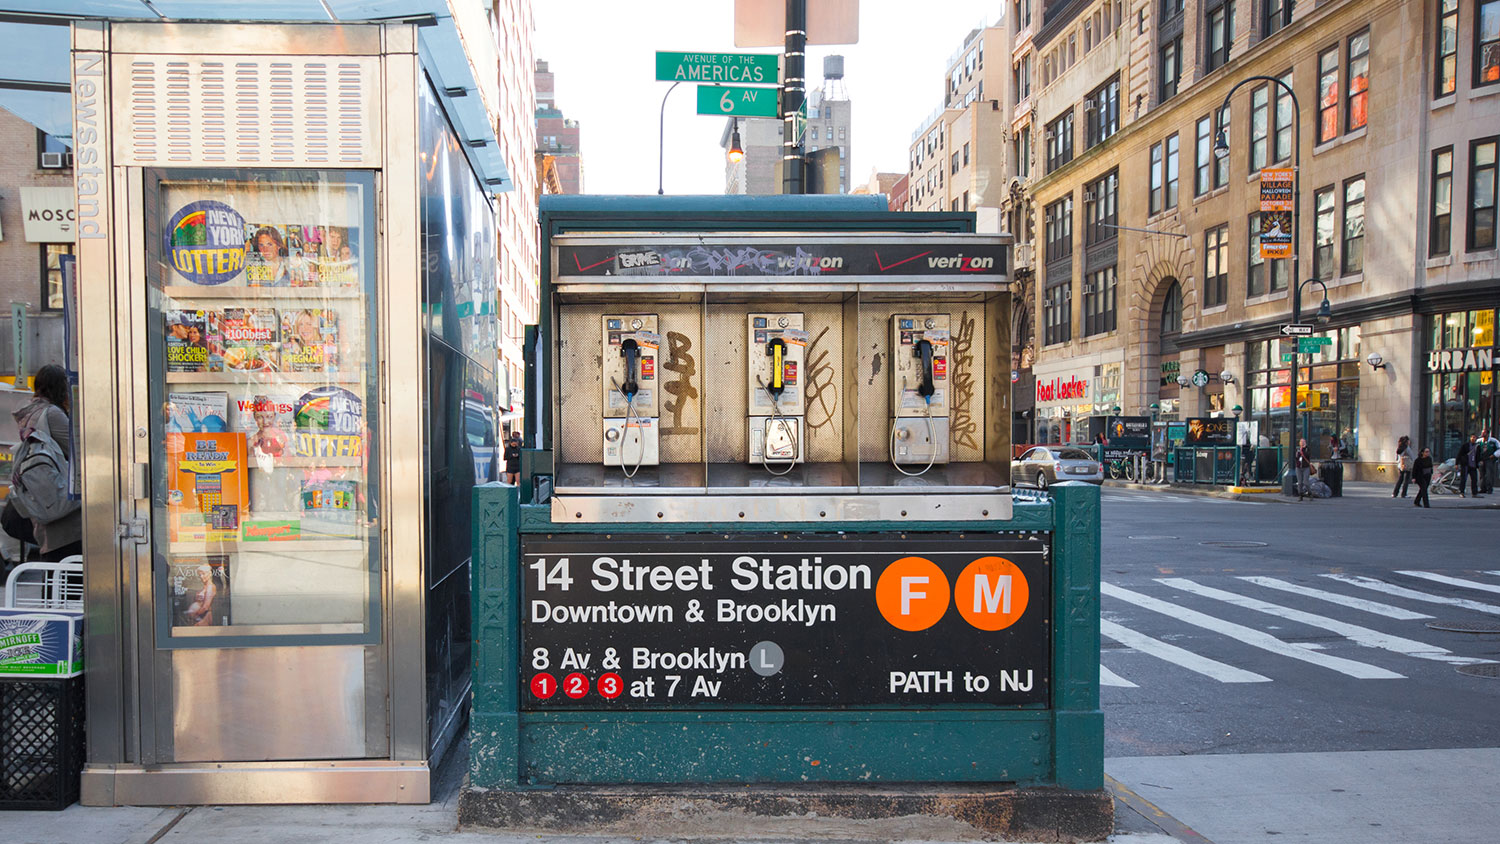 14th Street Station in NYC